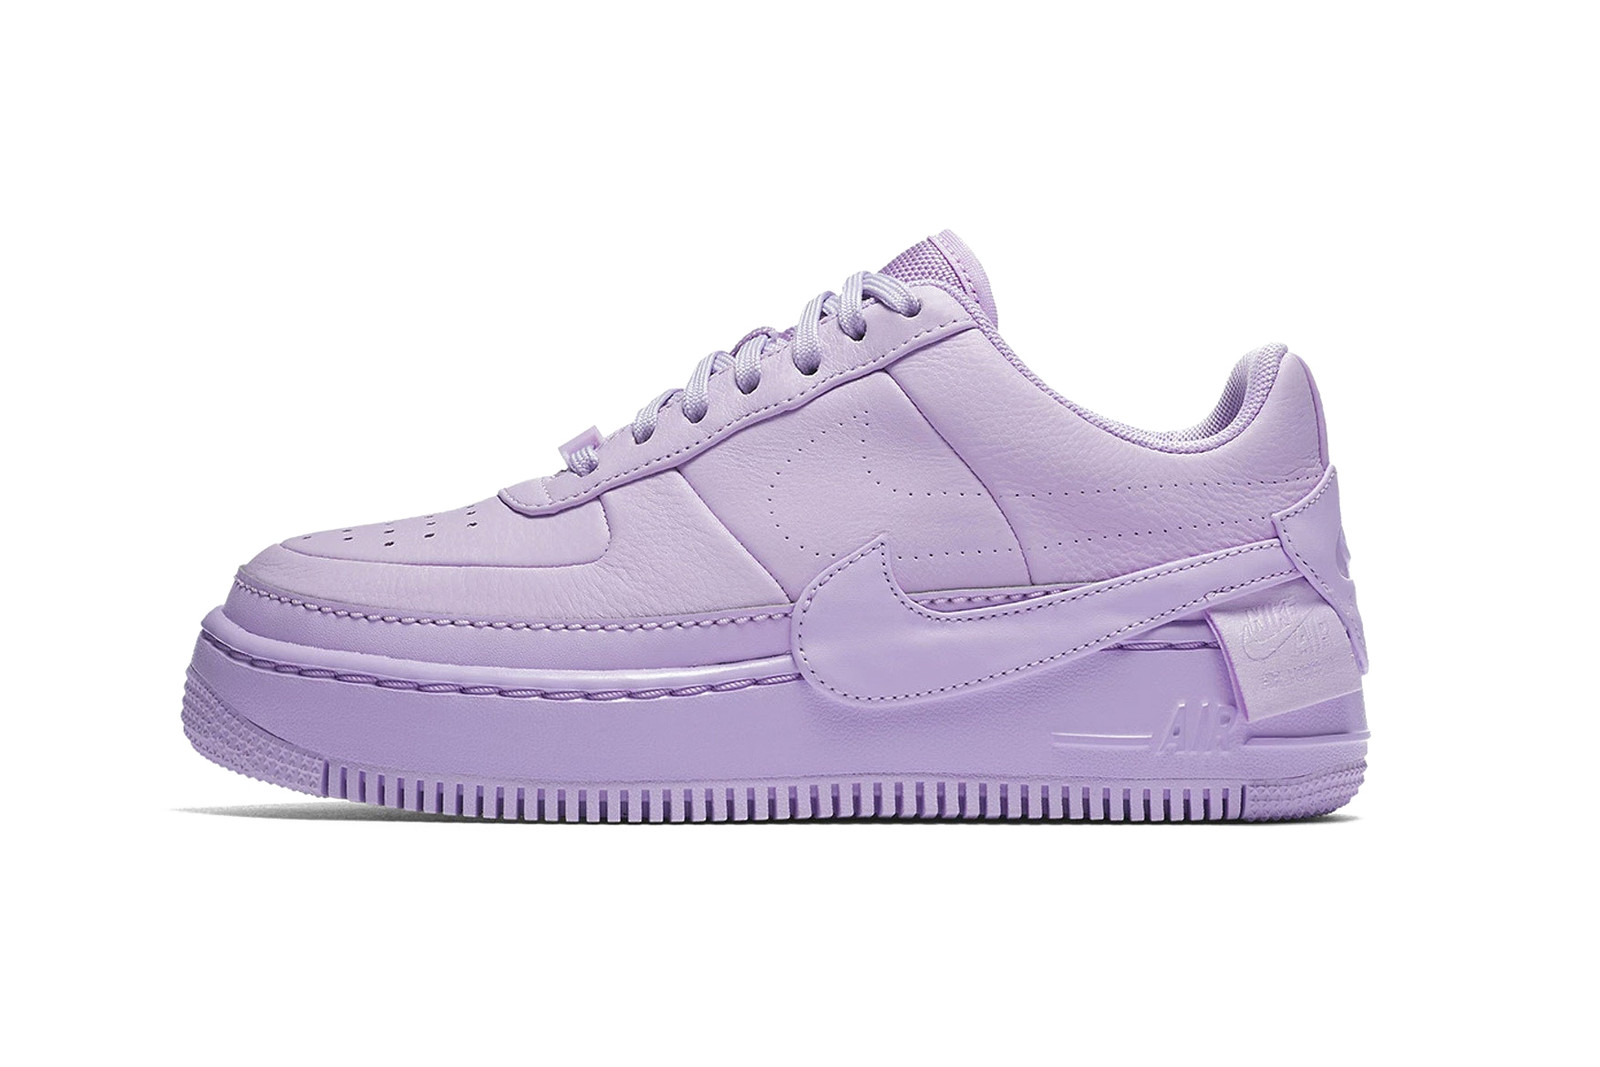 Best Nike Air Force 1 Low Sneakers for Spring Outfit Shoes Summer Look Purple Pink Suede Reimagined Jester XX Corduroy